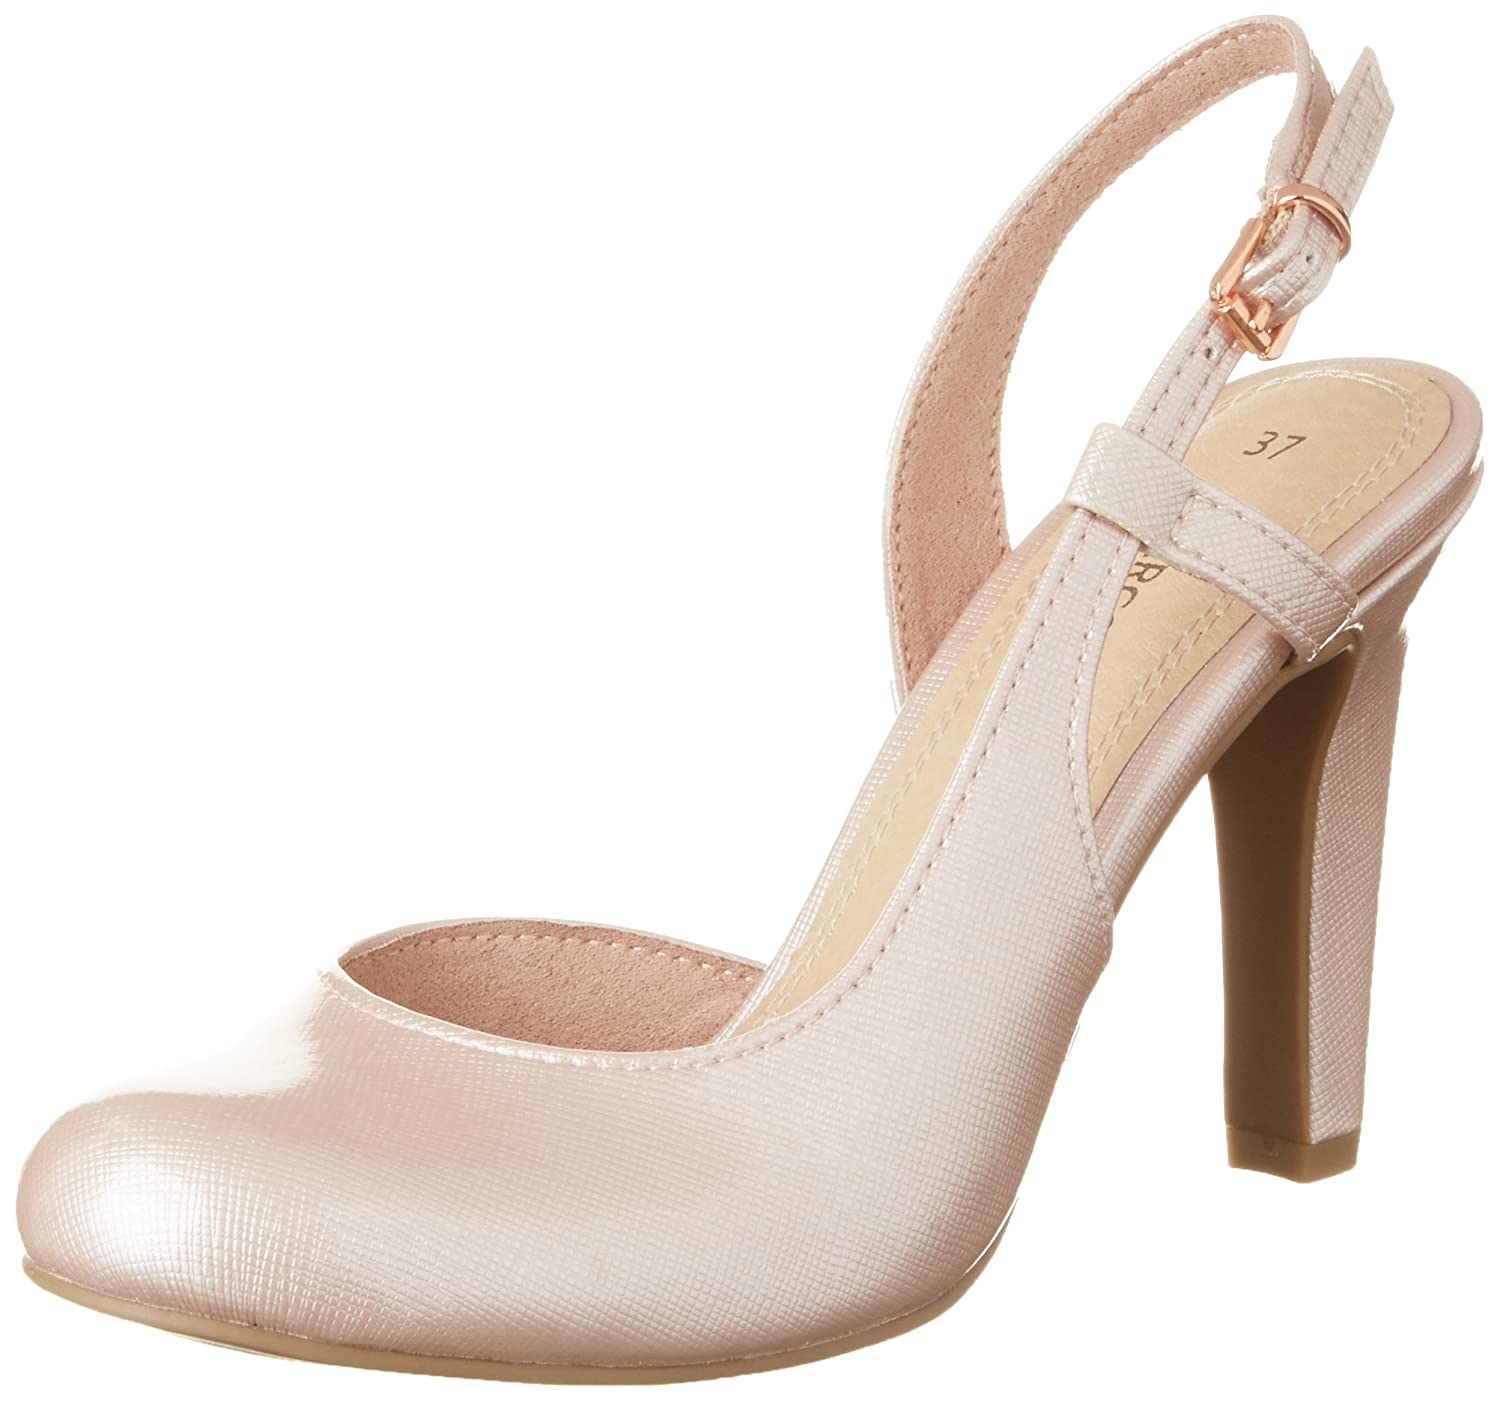 Marco Rose Tozzi 521) 29611, Ouvert Sandales Bout Ouvert Femme Rose (Rose 521) 0dfb5e2 - reprogrammed.space